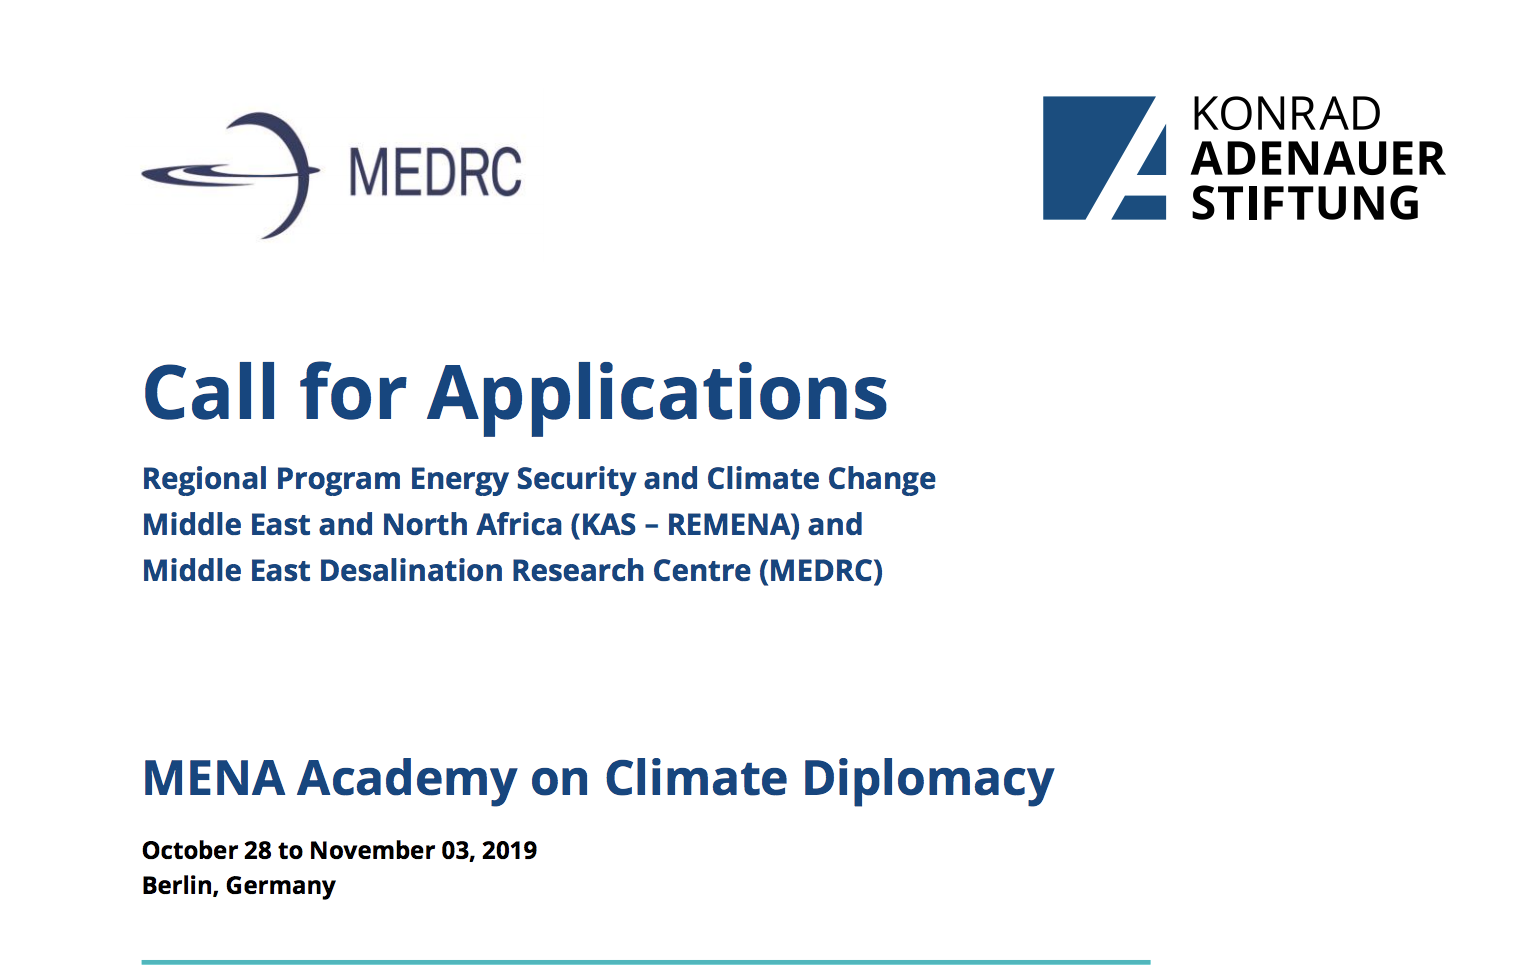 MENA Academy on Climate Diplomacy Conference 2019 in Berlin